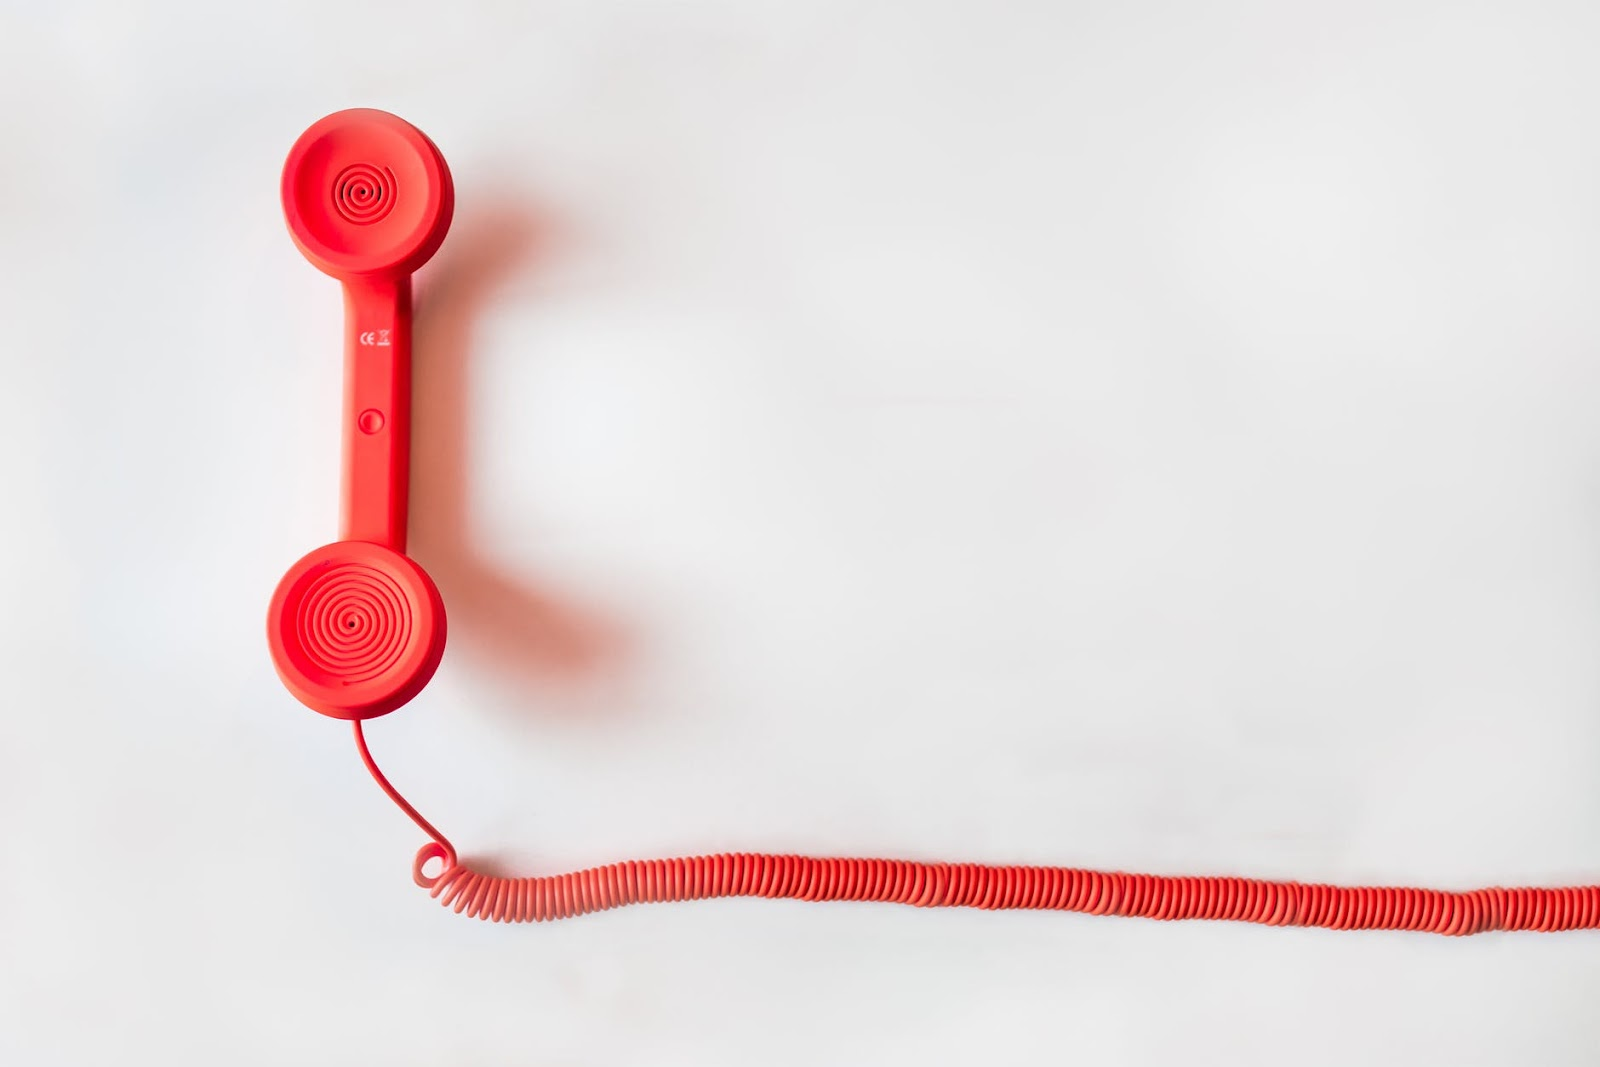 red wired phone